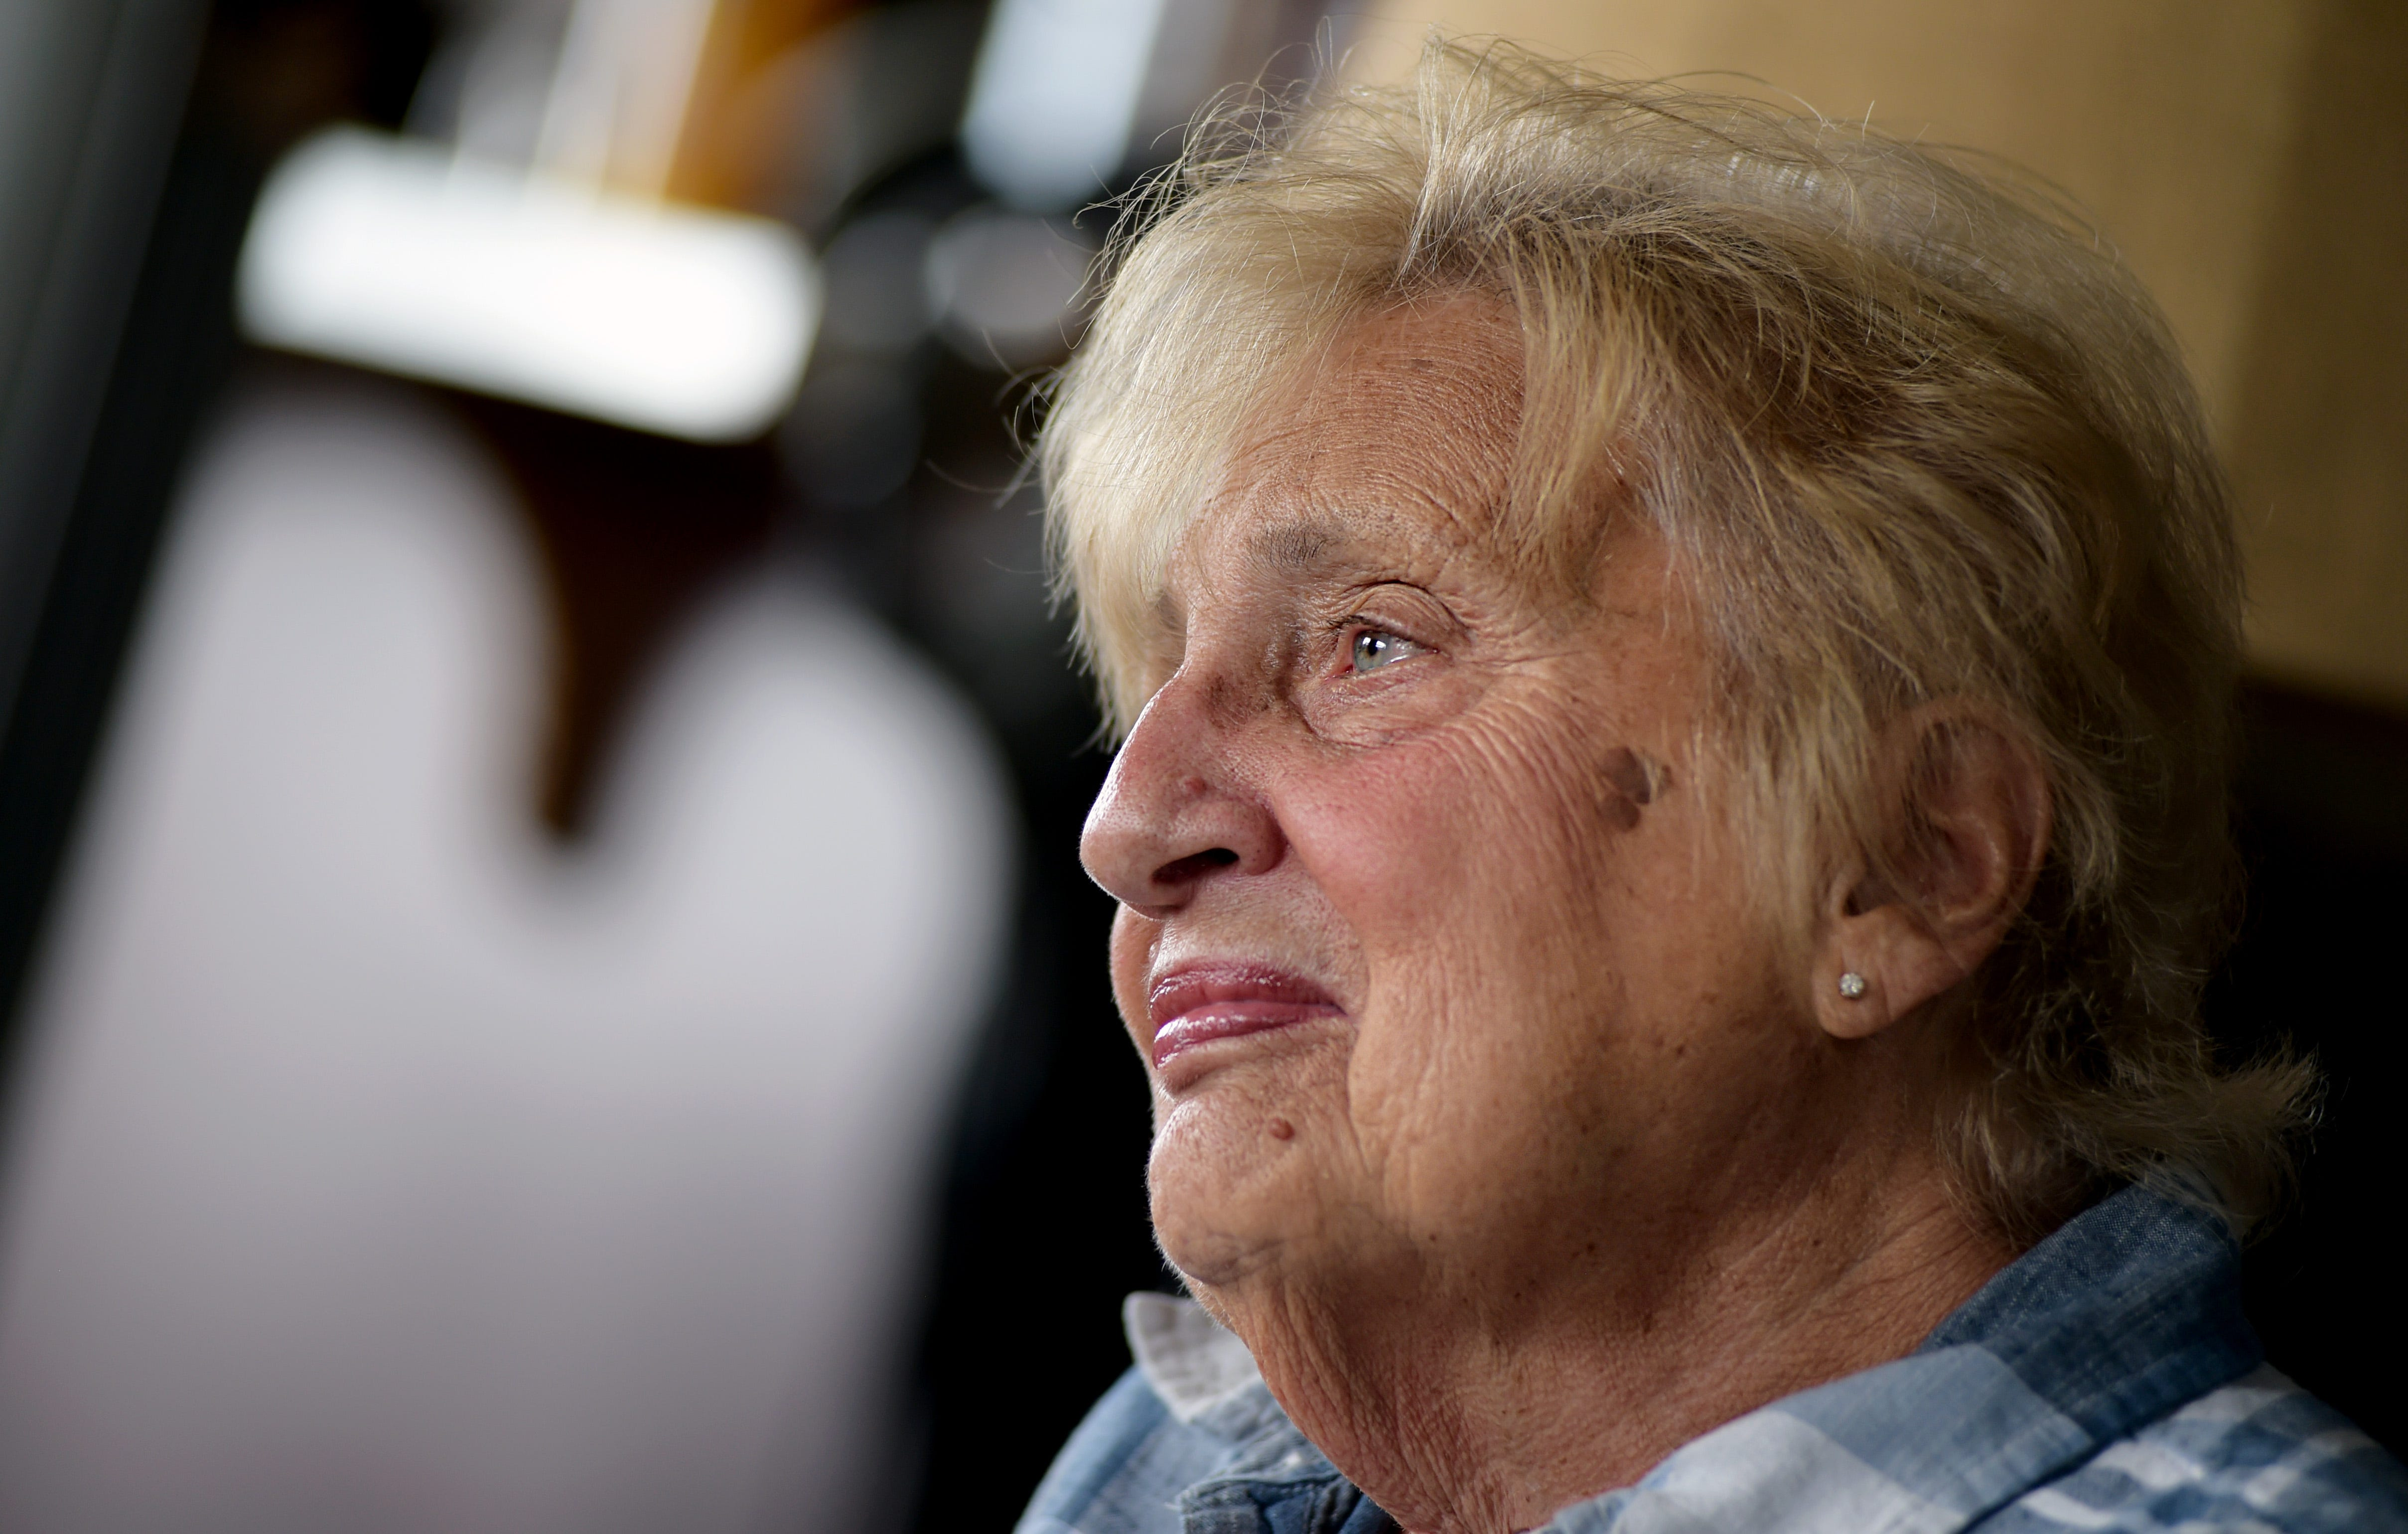 Sandy Polakovich's battle with COVID-19 included two hospitalizations and being placed on a ventilator. The Johnson City resident lost her of 59 years, Bill Polakovich, to the virus. October 7, 2020.